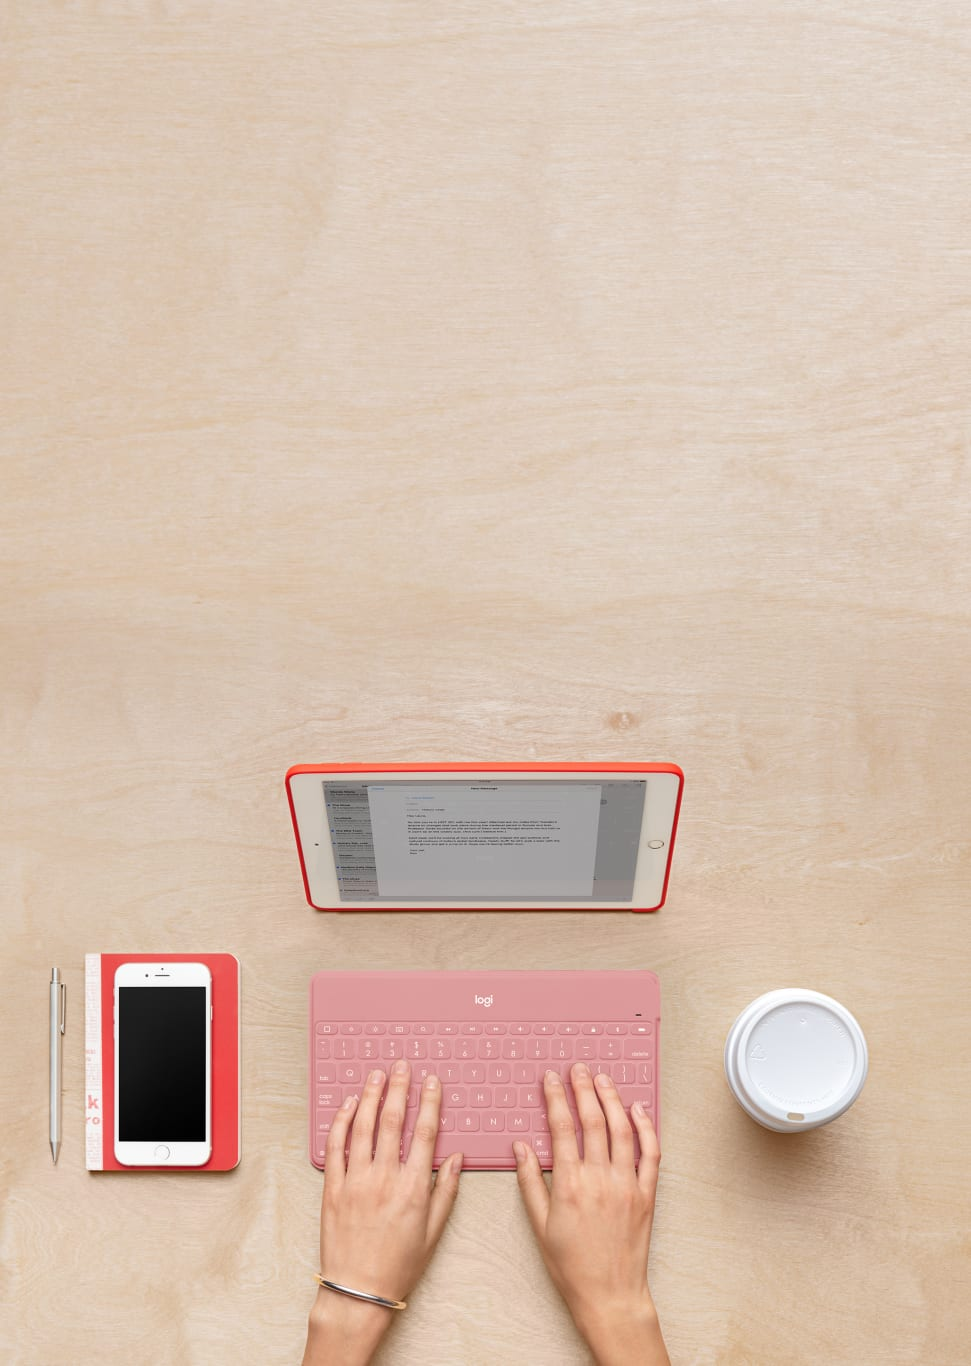 keys-to-go-feature-04-sweet-tablet-blush